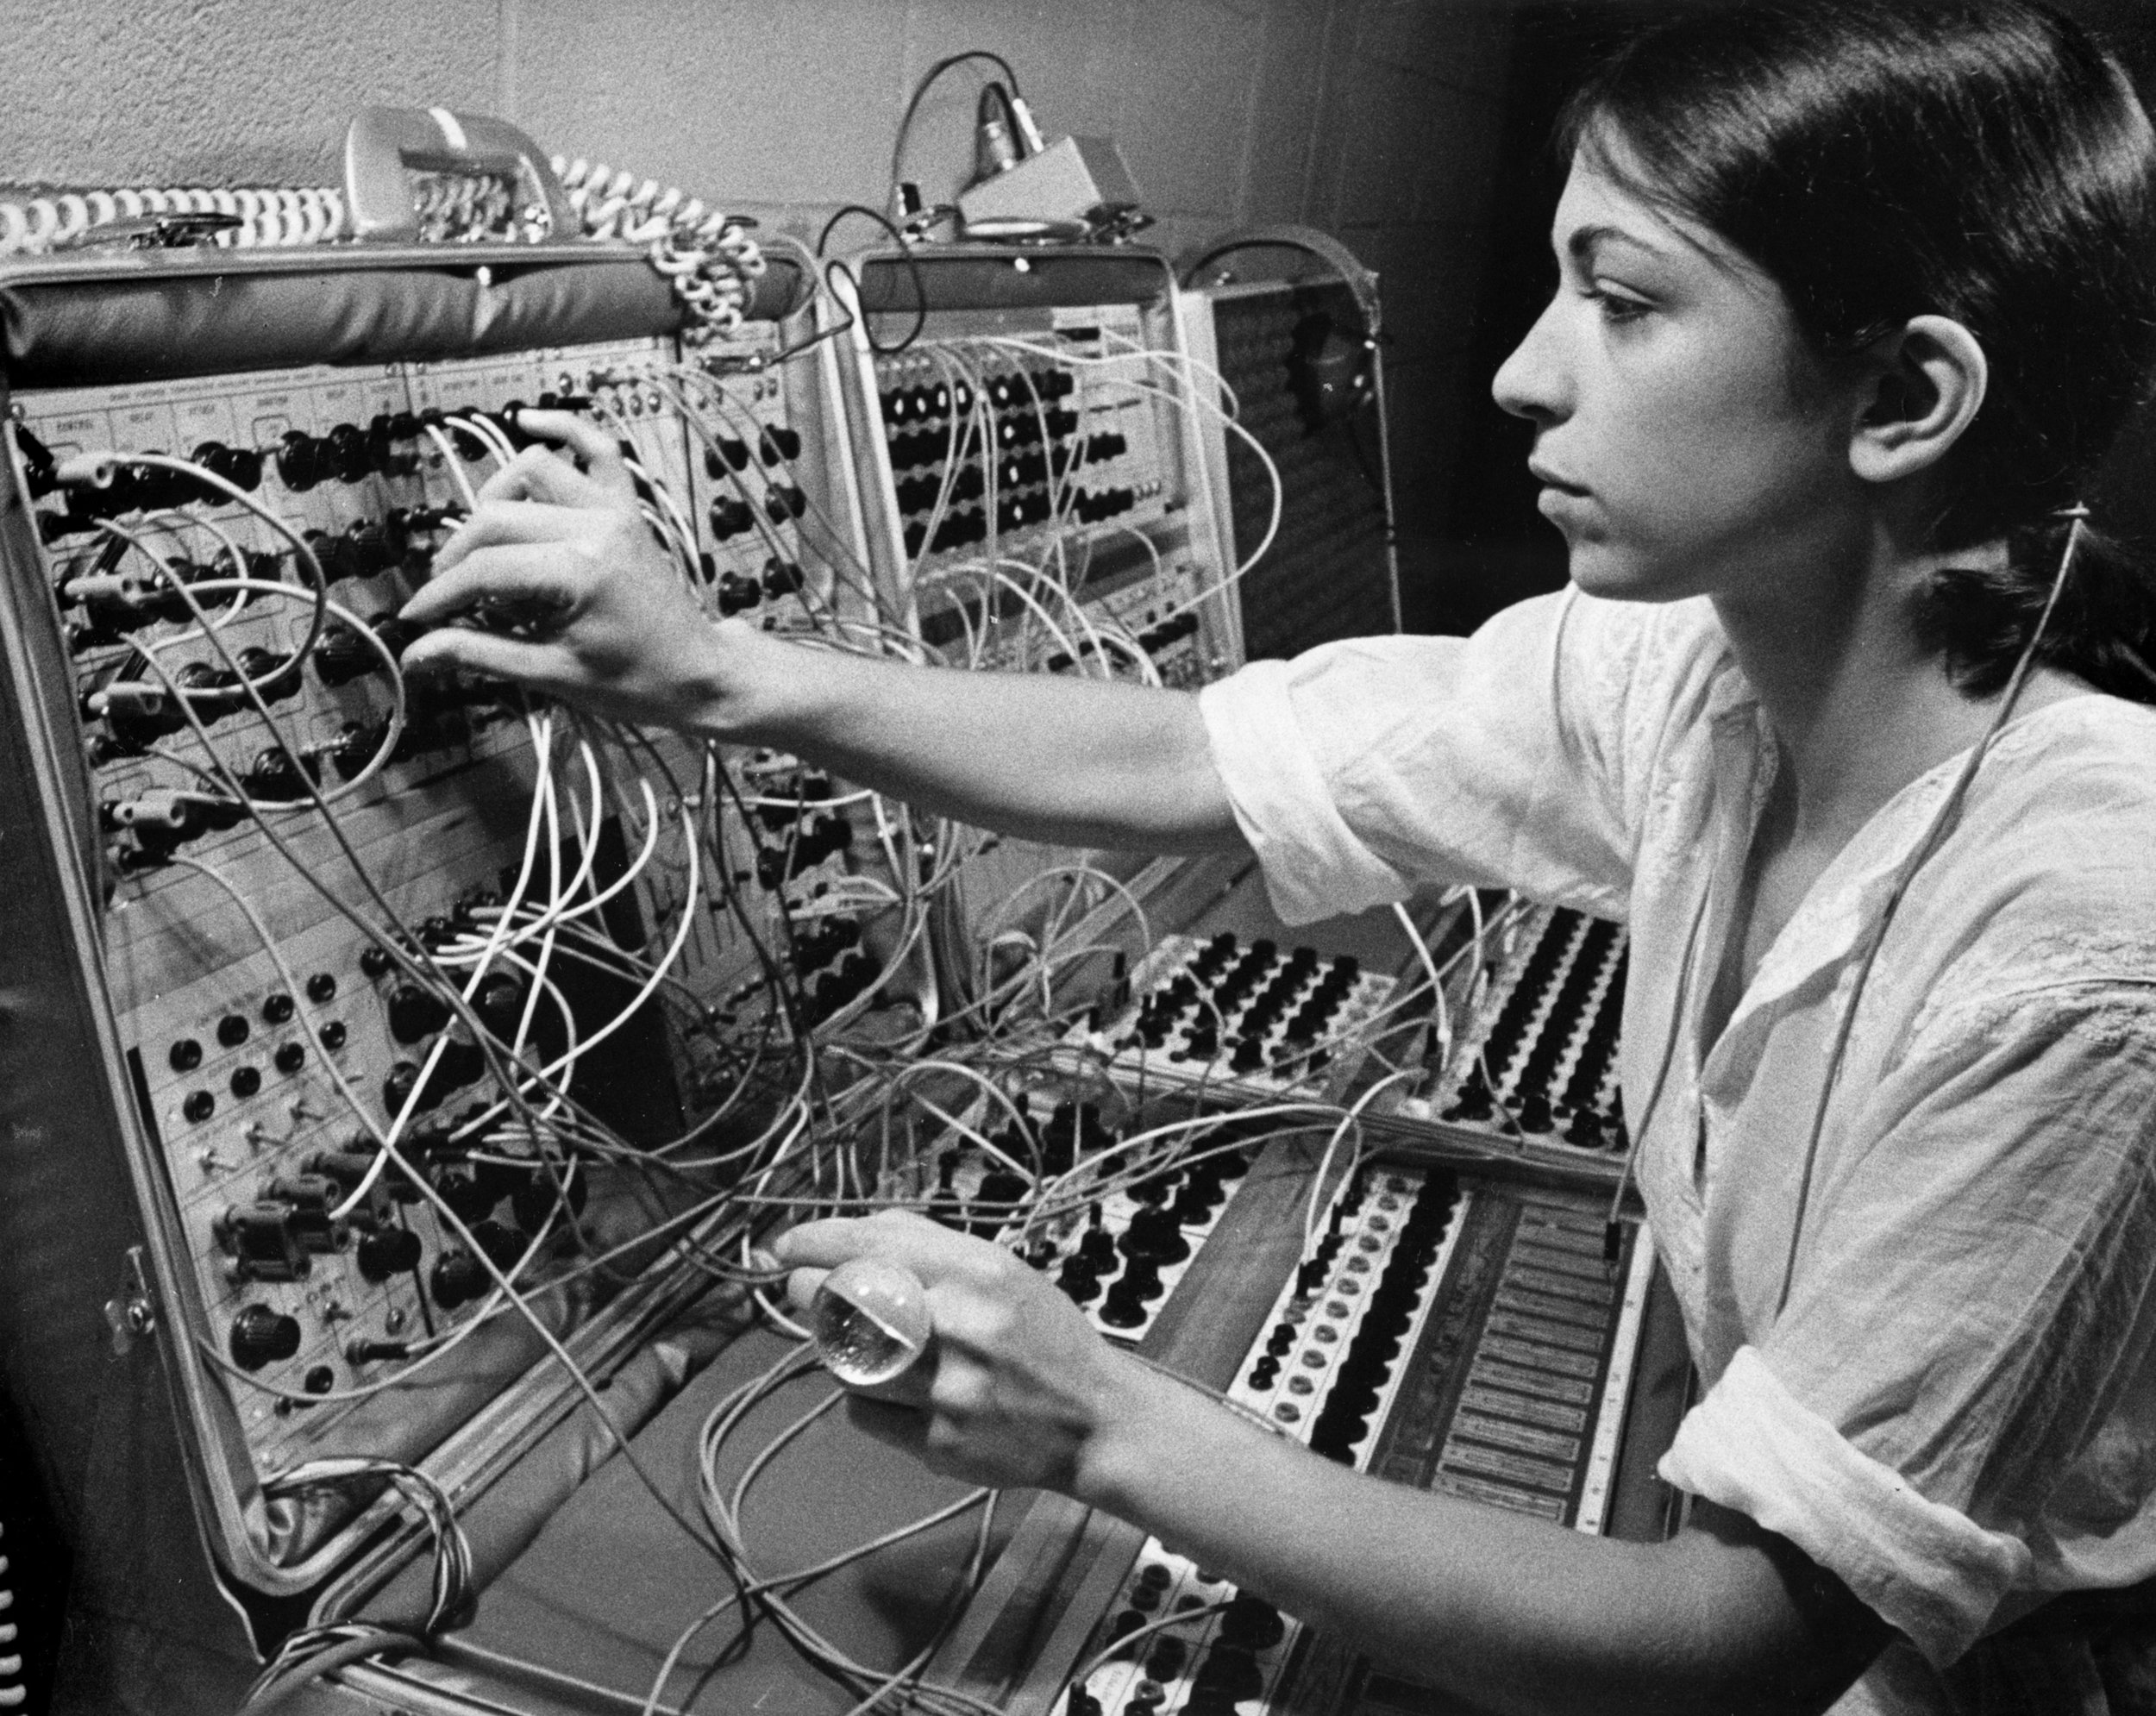 Suzanne Ciani with her Buchla modular synthesizer